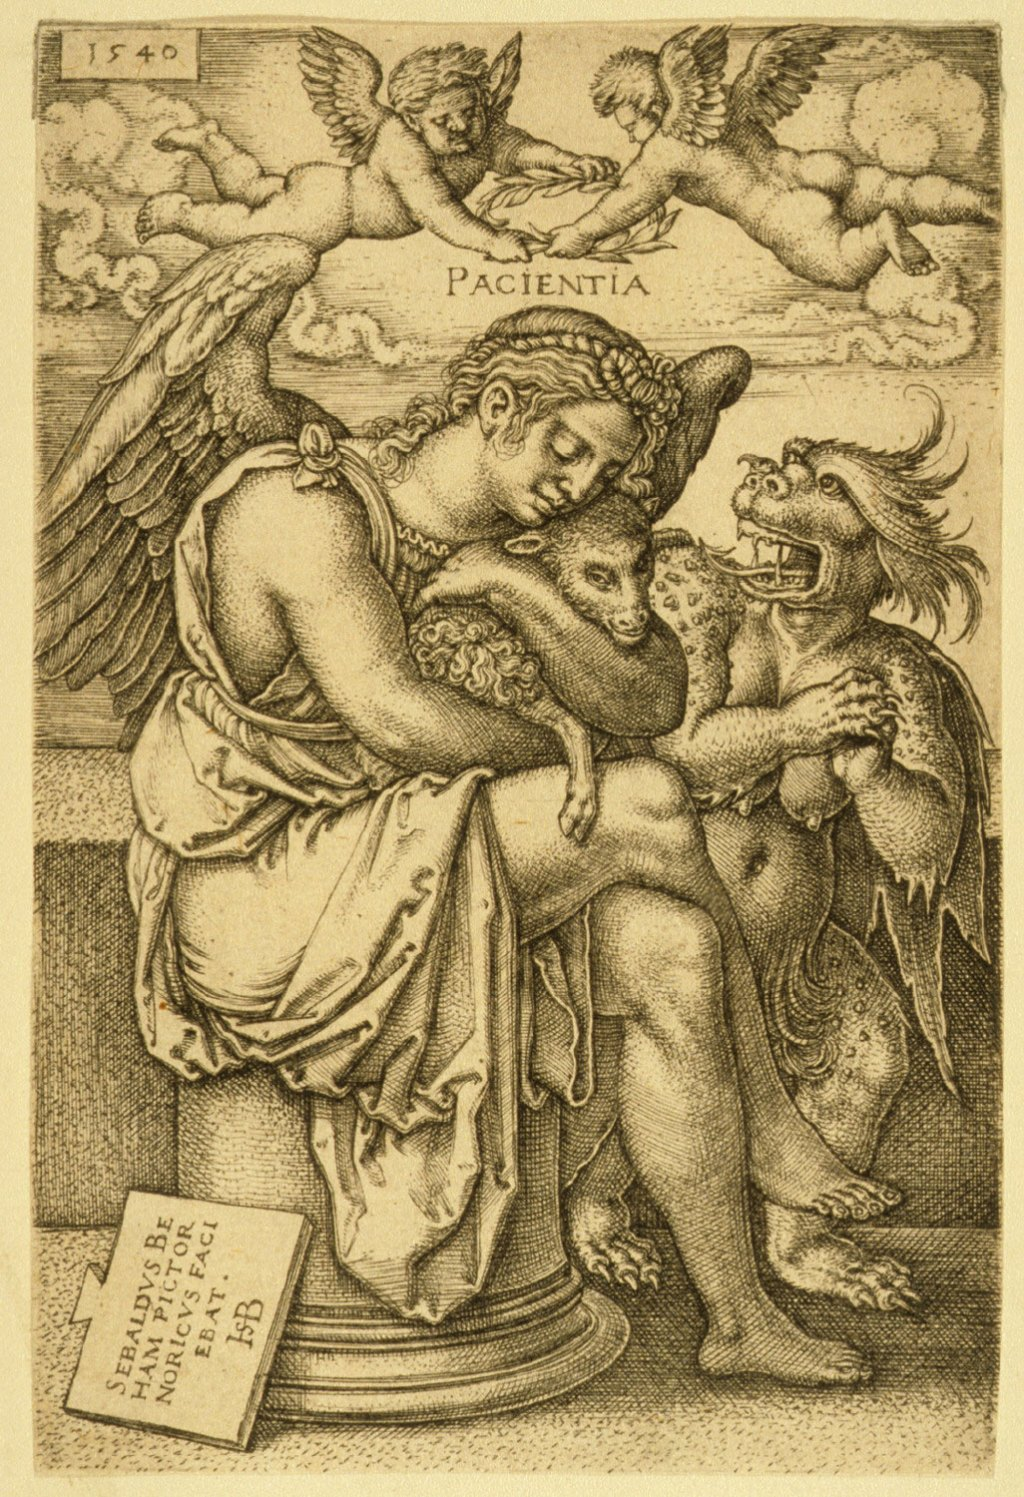 Hans Sebald Beham -Pacientia 1540